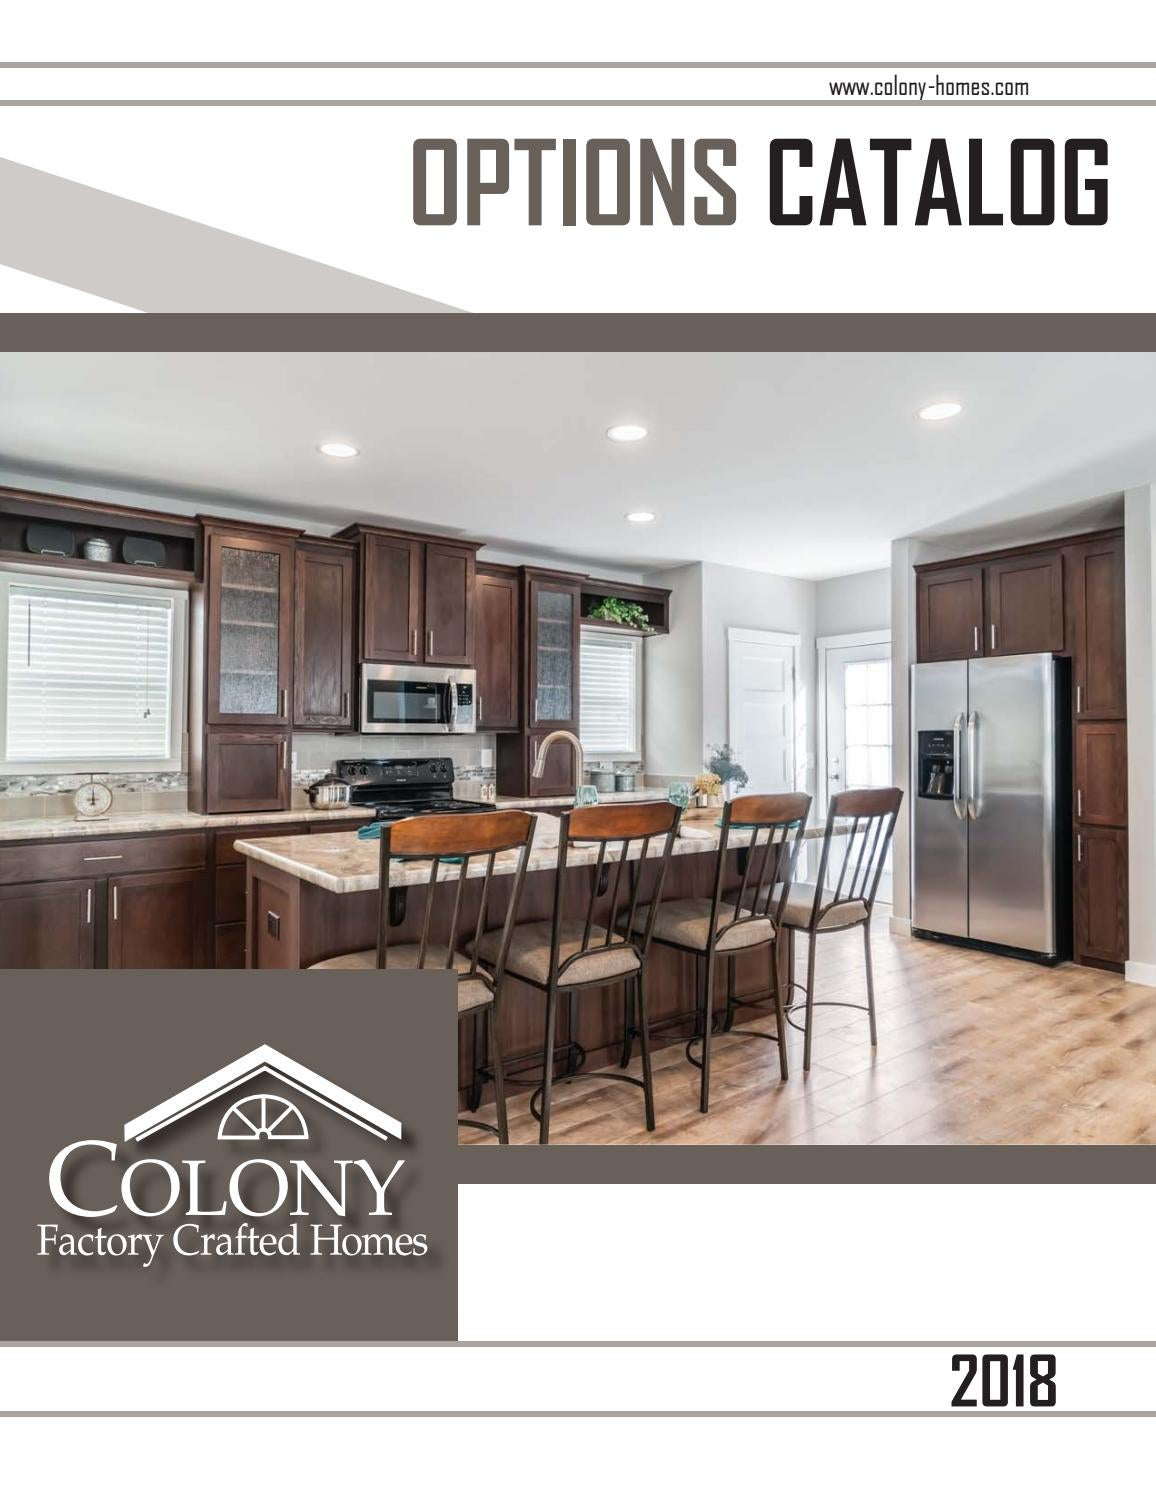 colony factory crafted homes options guide 2018 by the